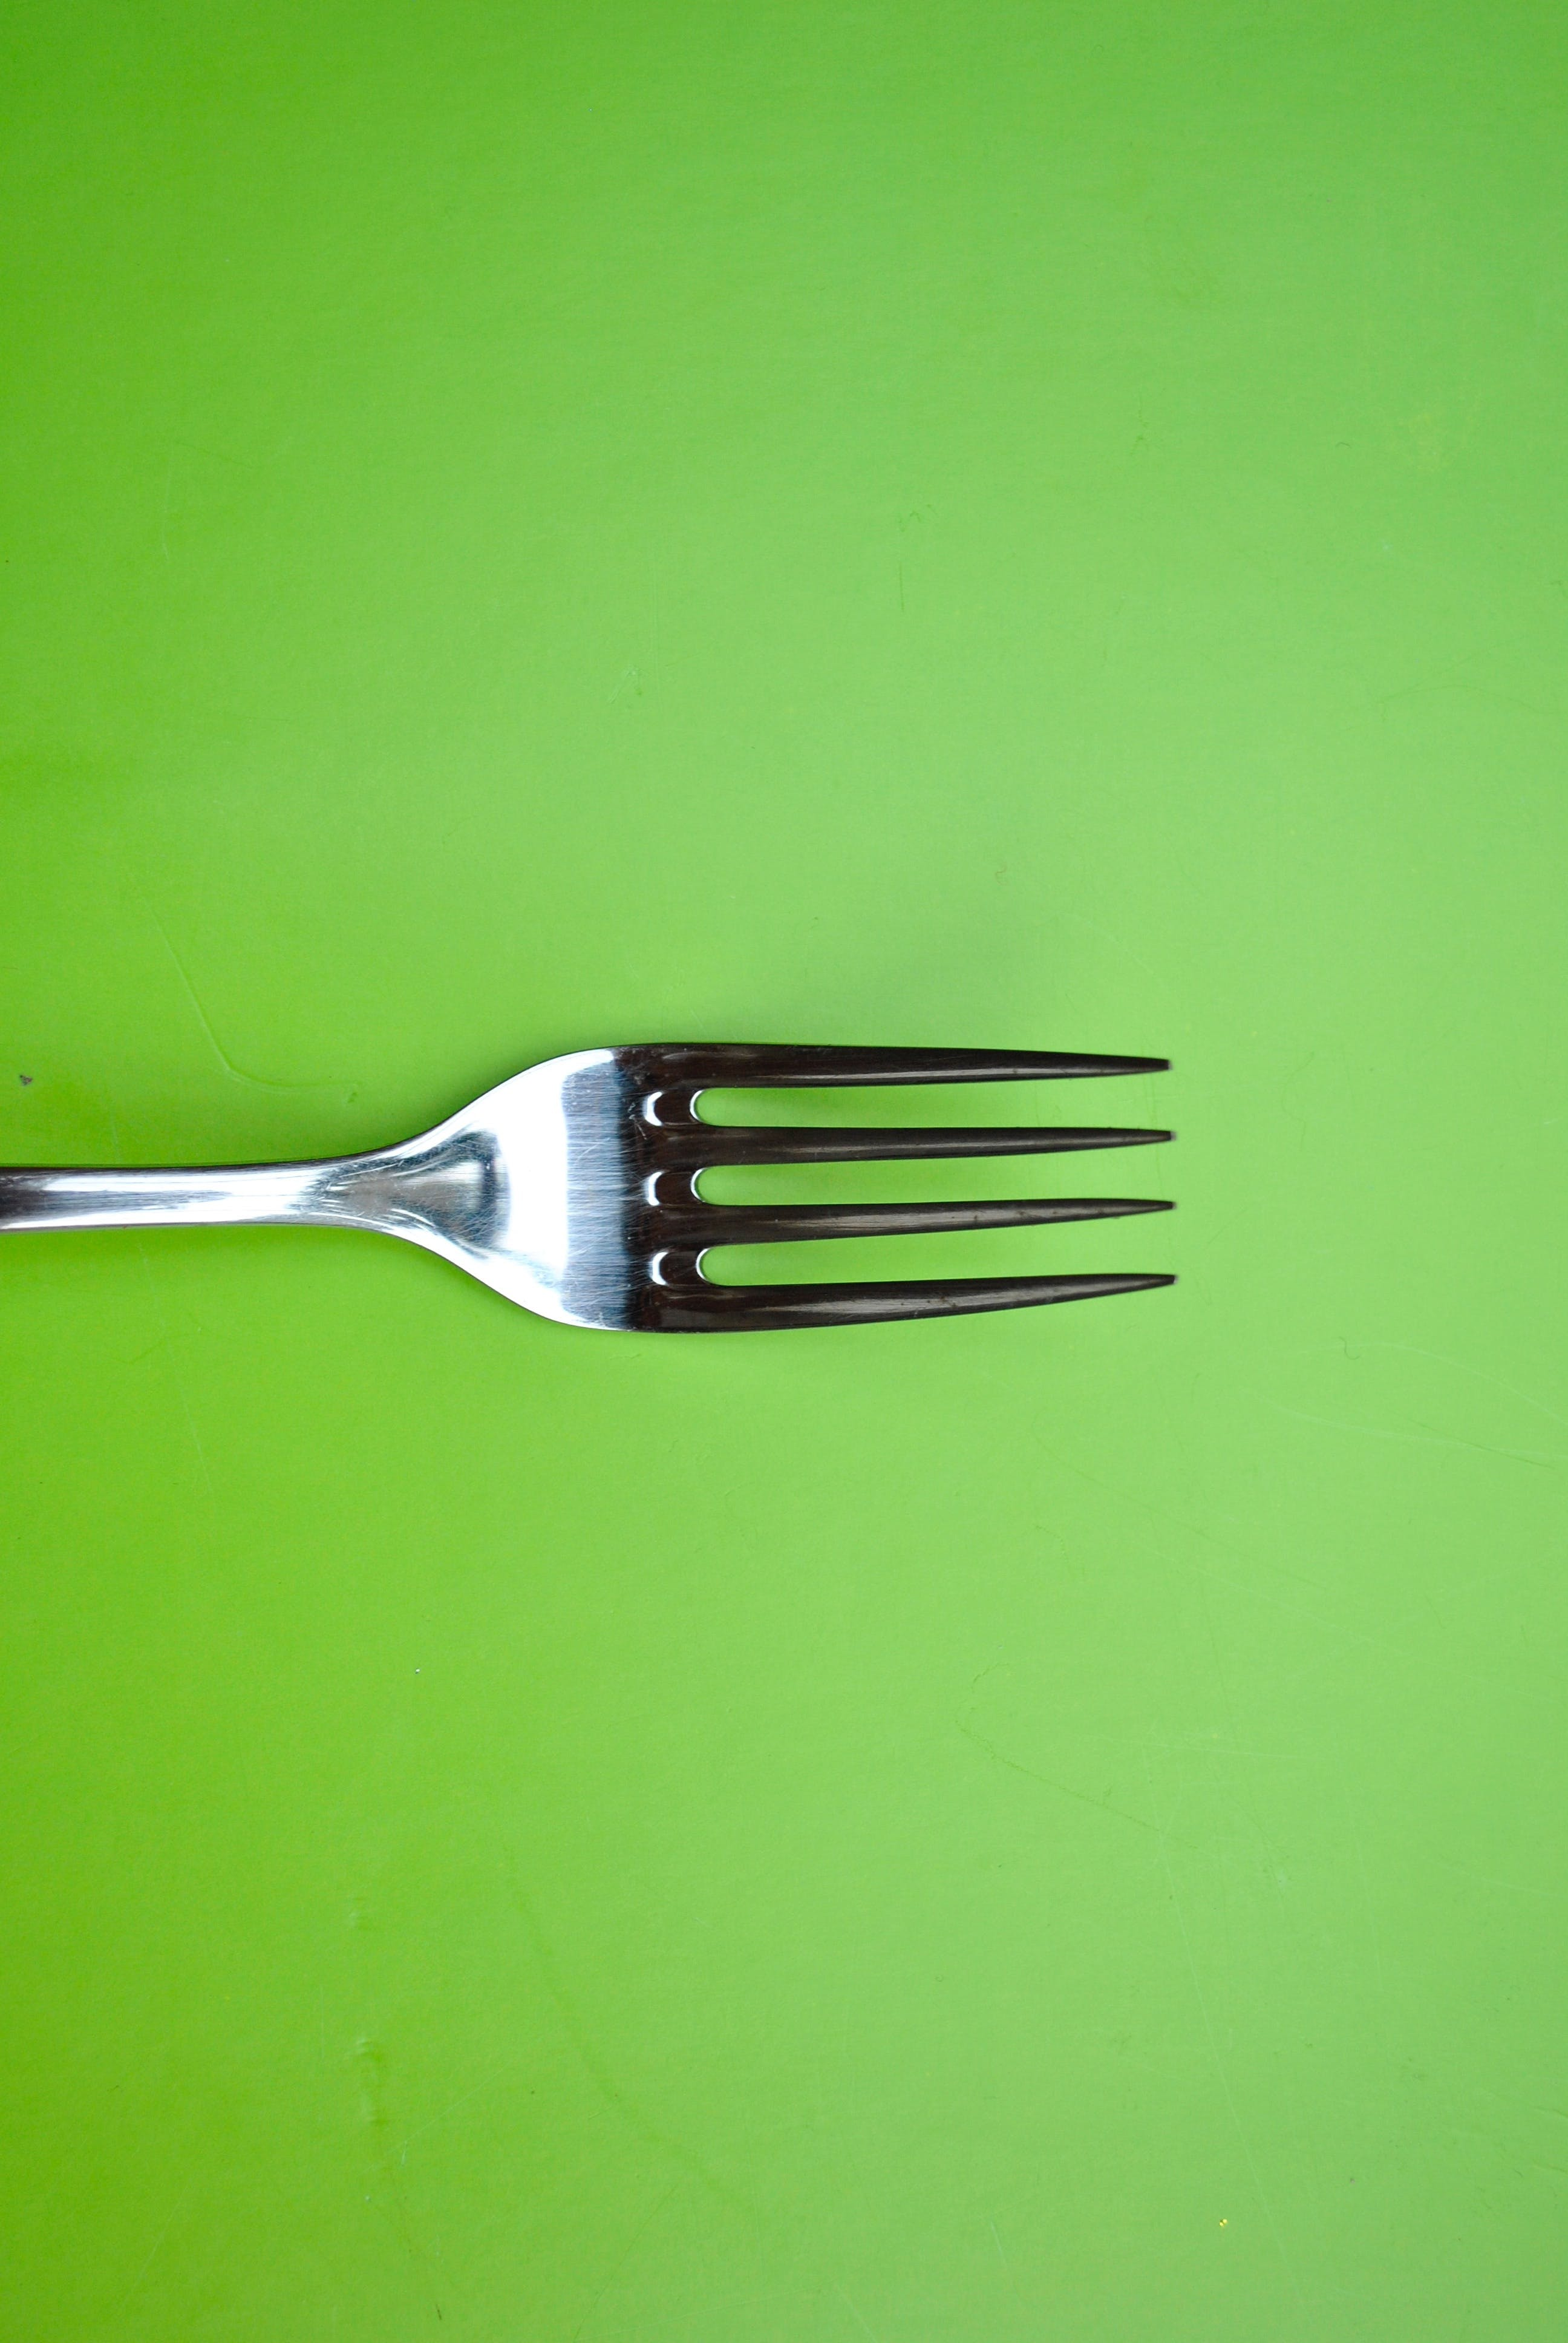 Stainless Steel Fork on Green Paper